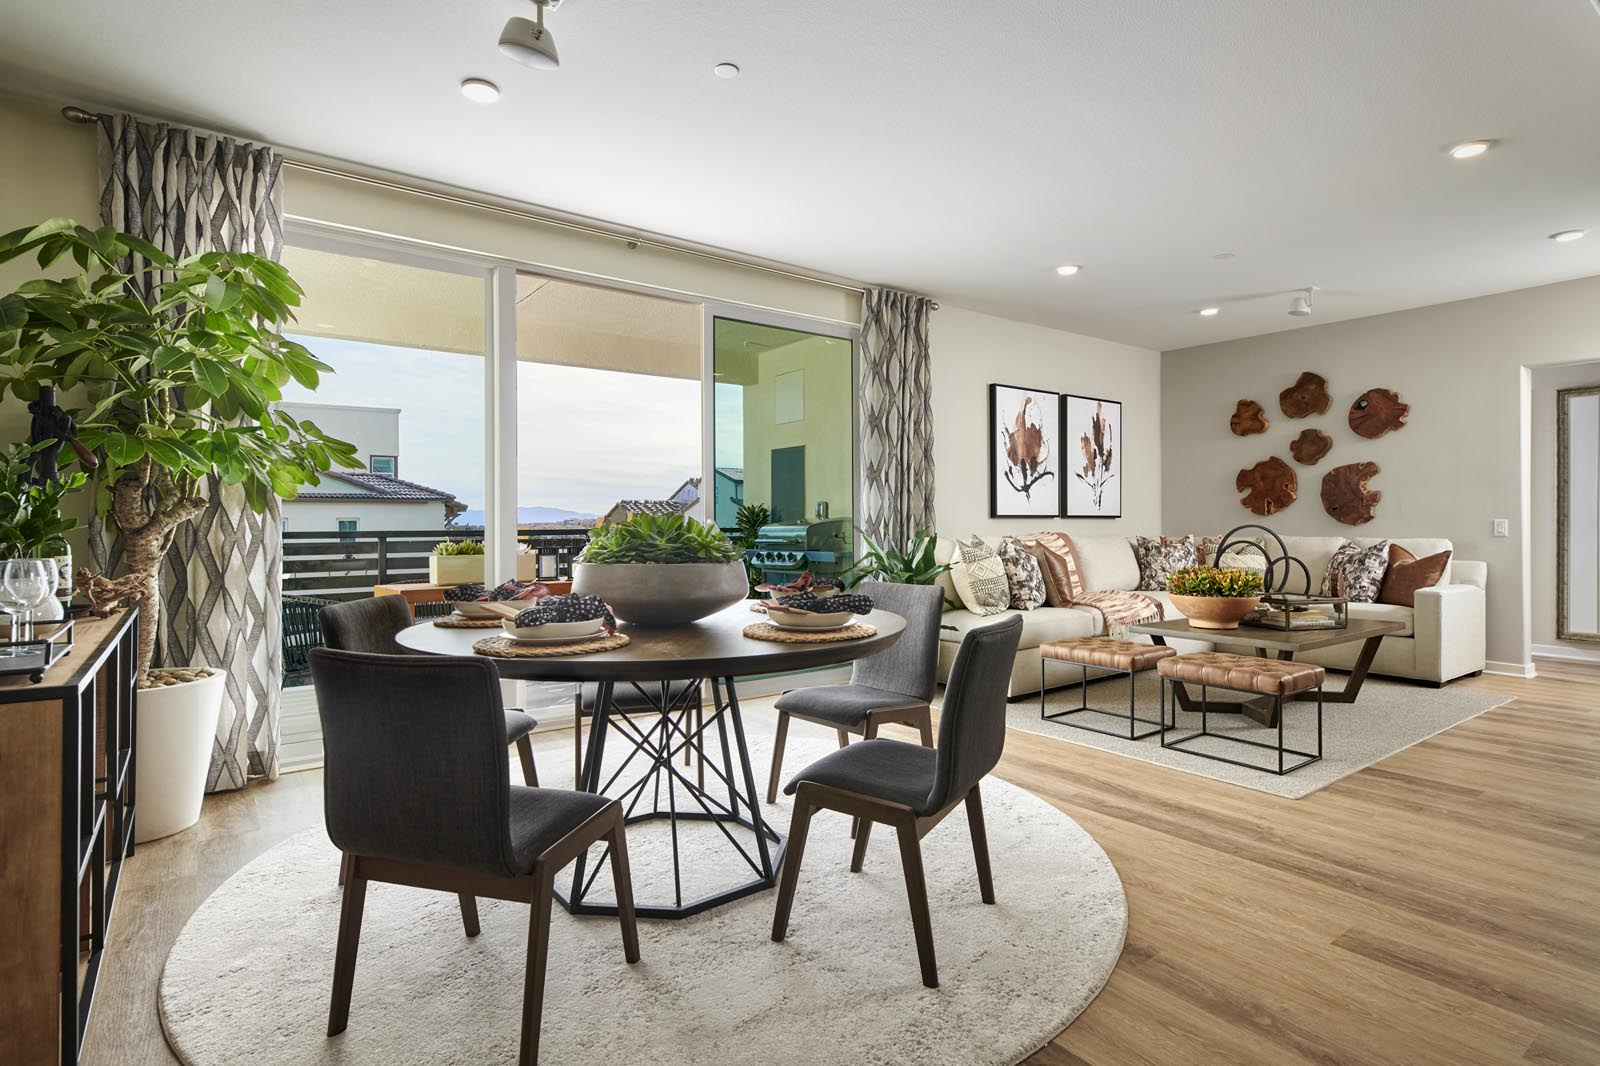 Dining Area to Great Room | Residence 5 | Aspire | New Homes in Rancho Cucamonga, CA | Van Daele Homes